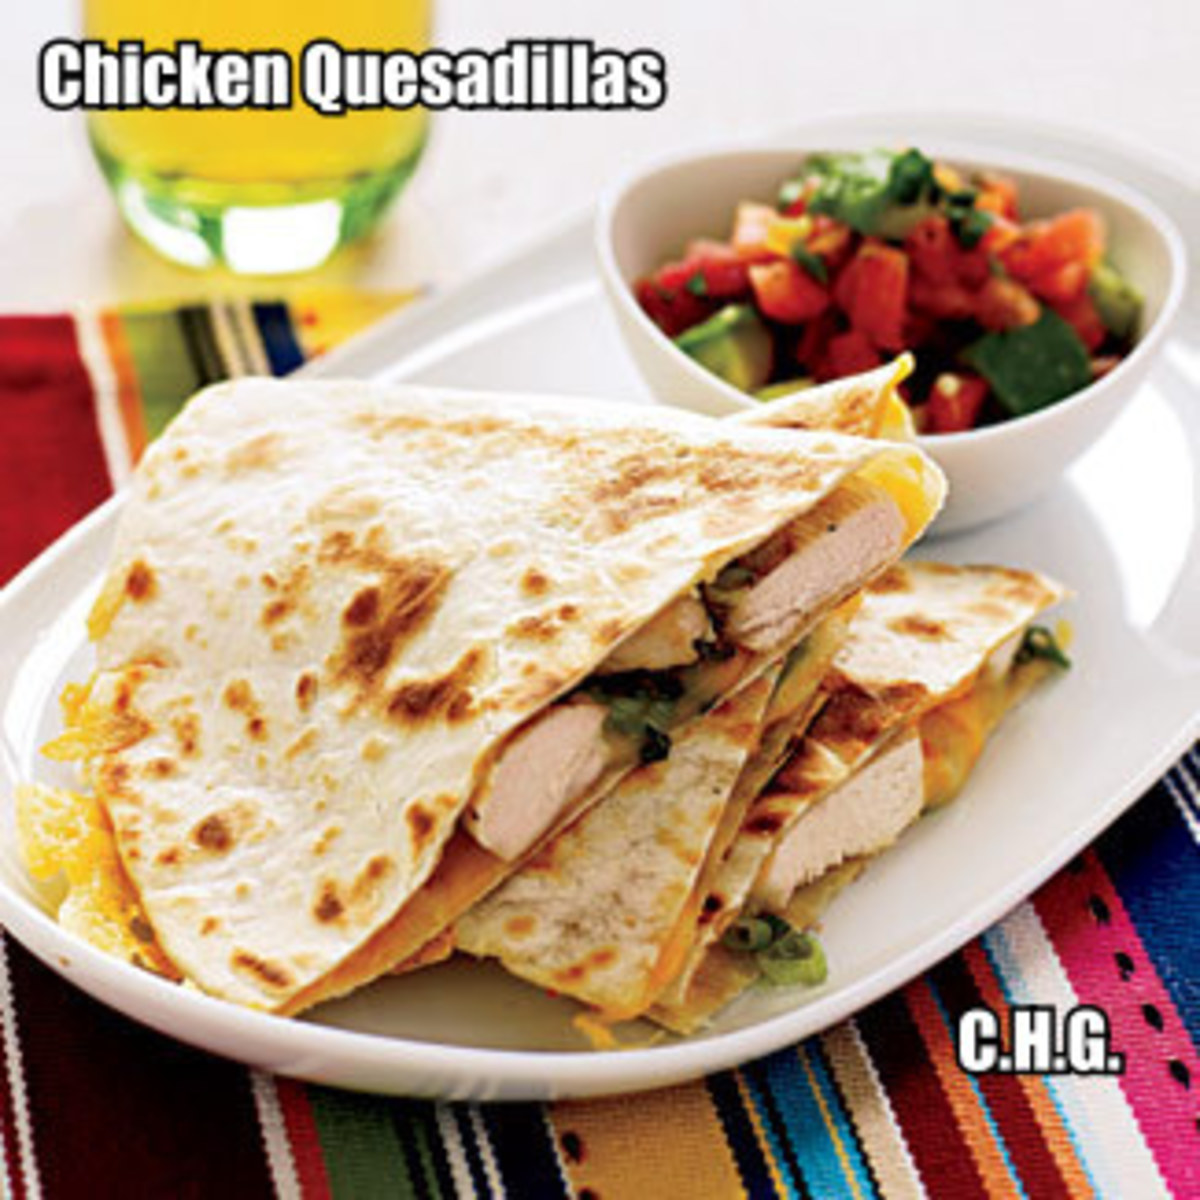 Here is the recipe for some of the most delicious chicken quesadillas you will ever eat.